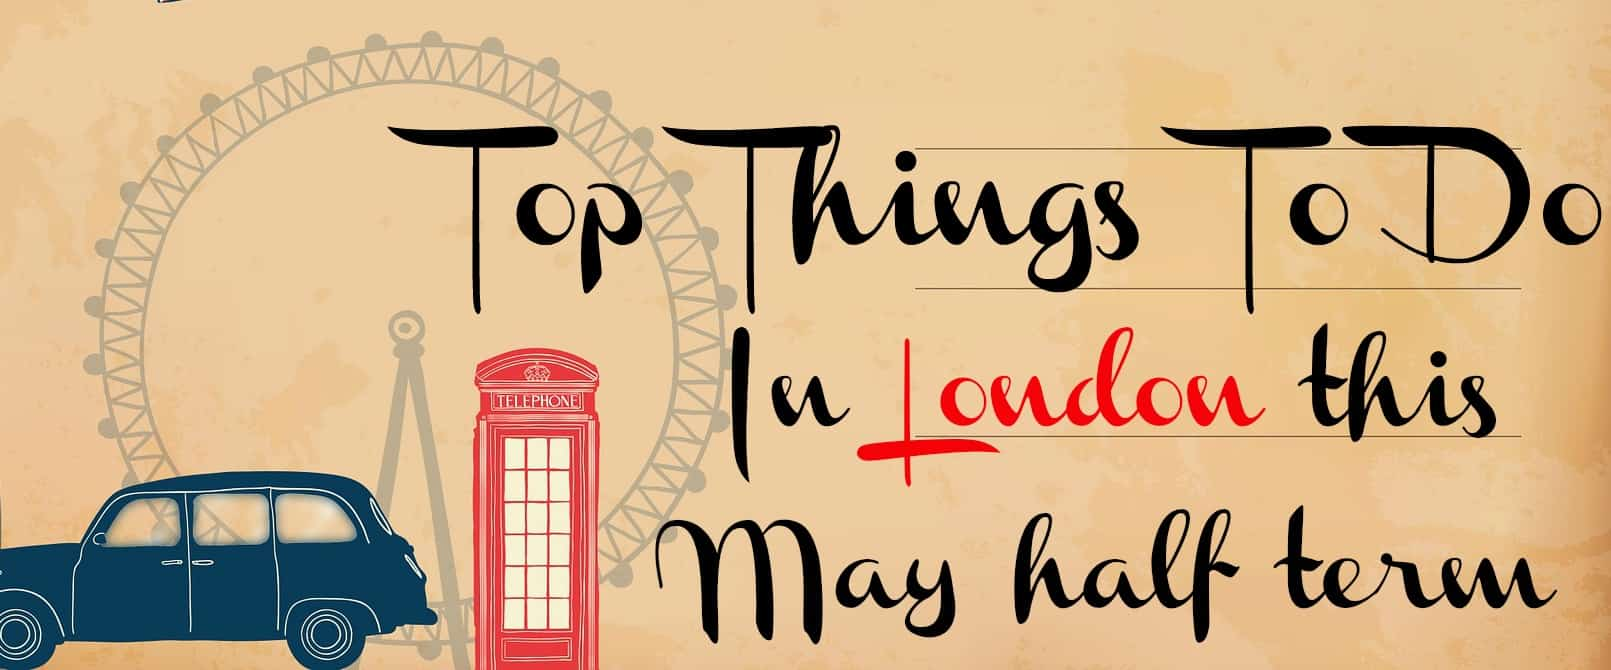 Top Things To Do This May Half Term (2016)